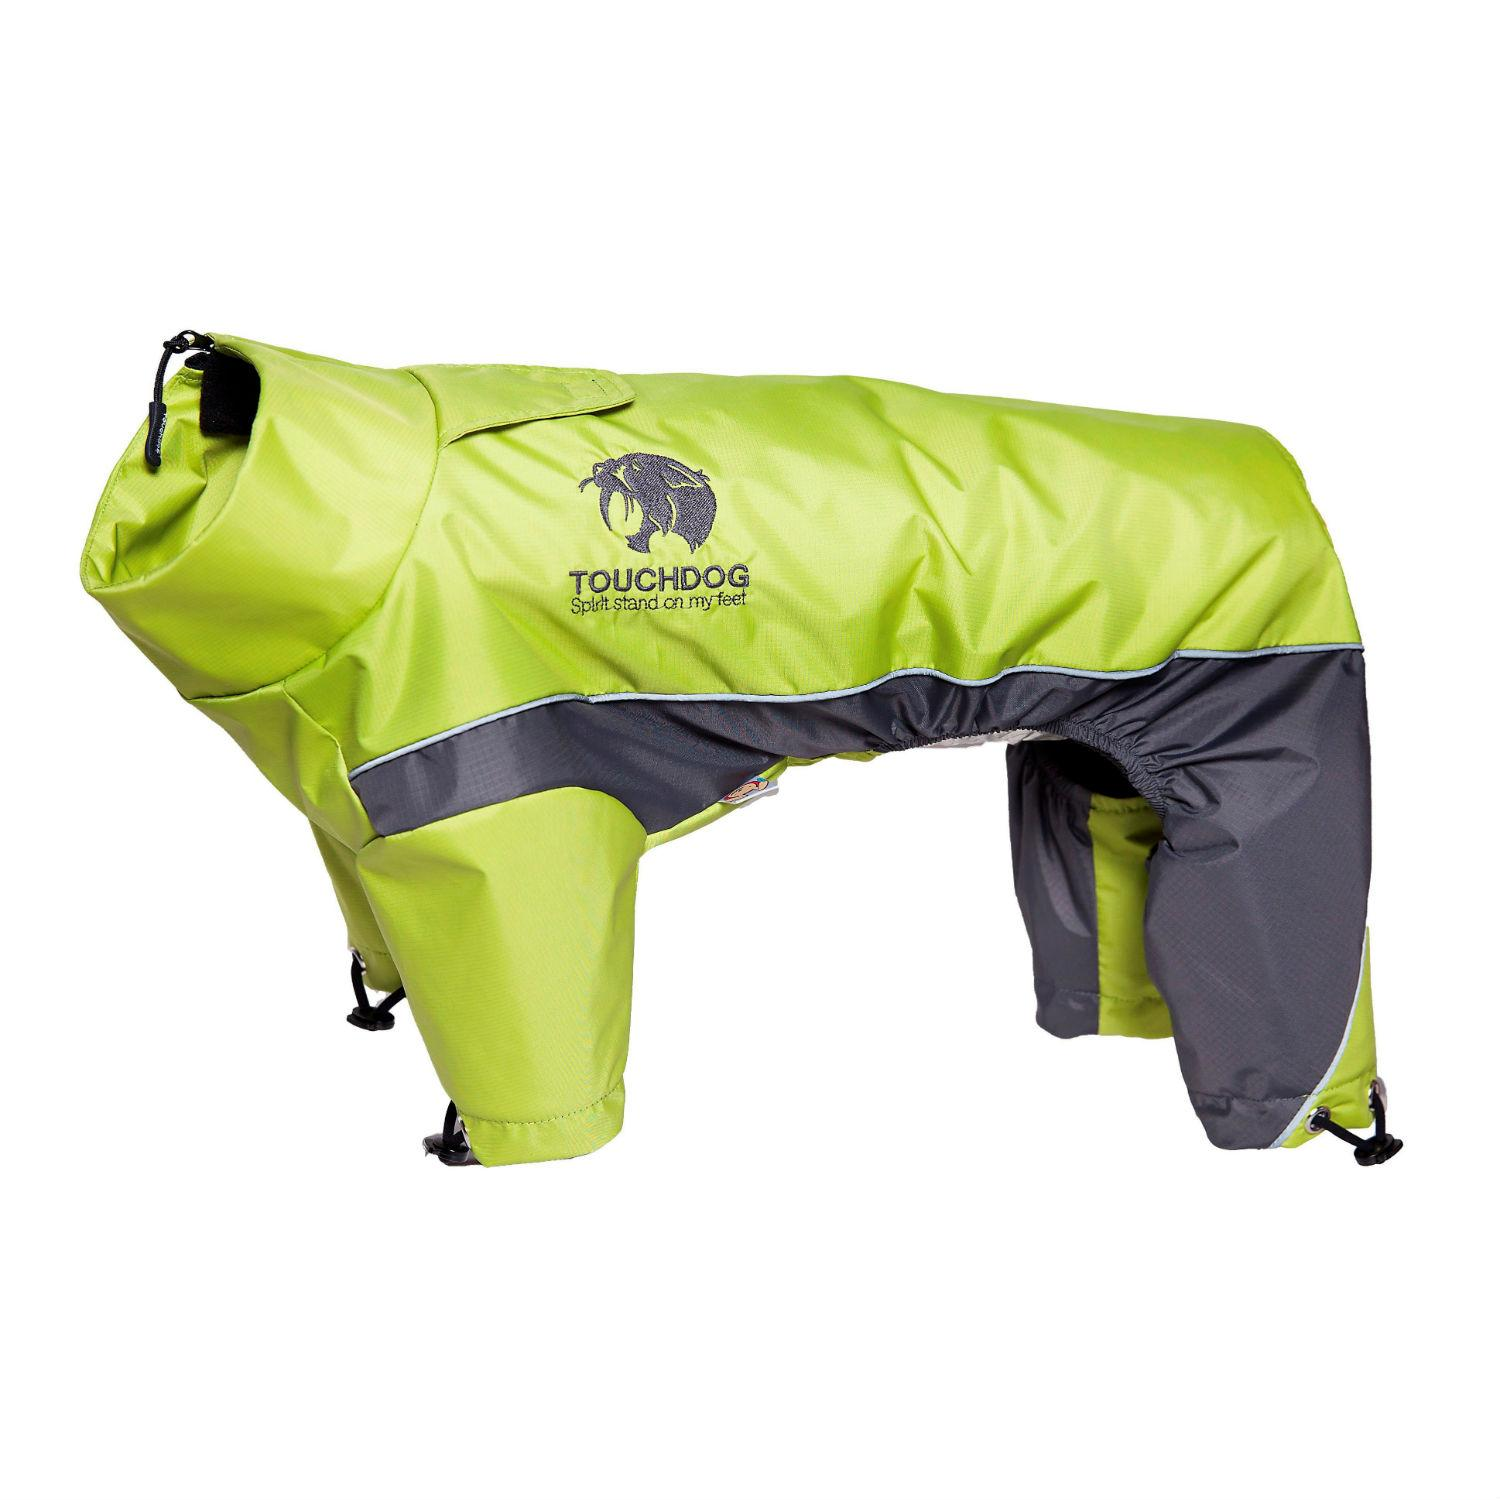 Pet Life Touchdog Quantum-Ice Full-Bodied Dog Jacket - Green